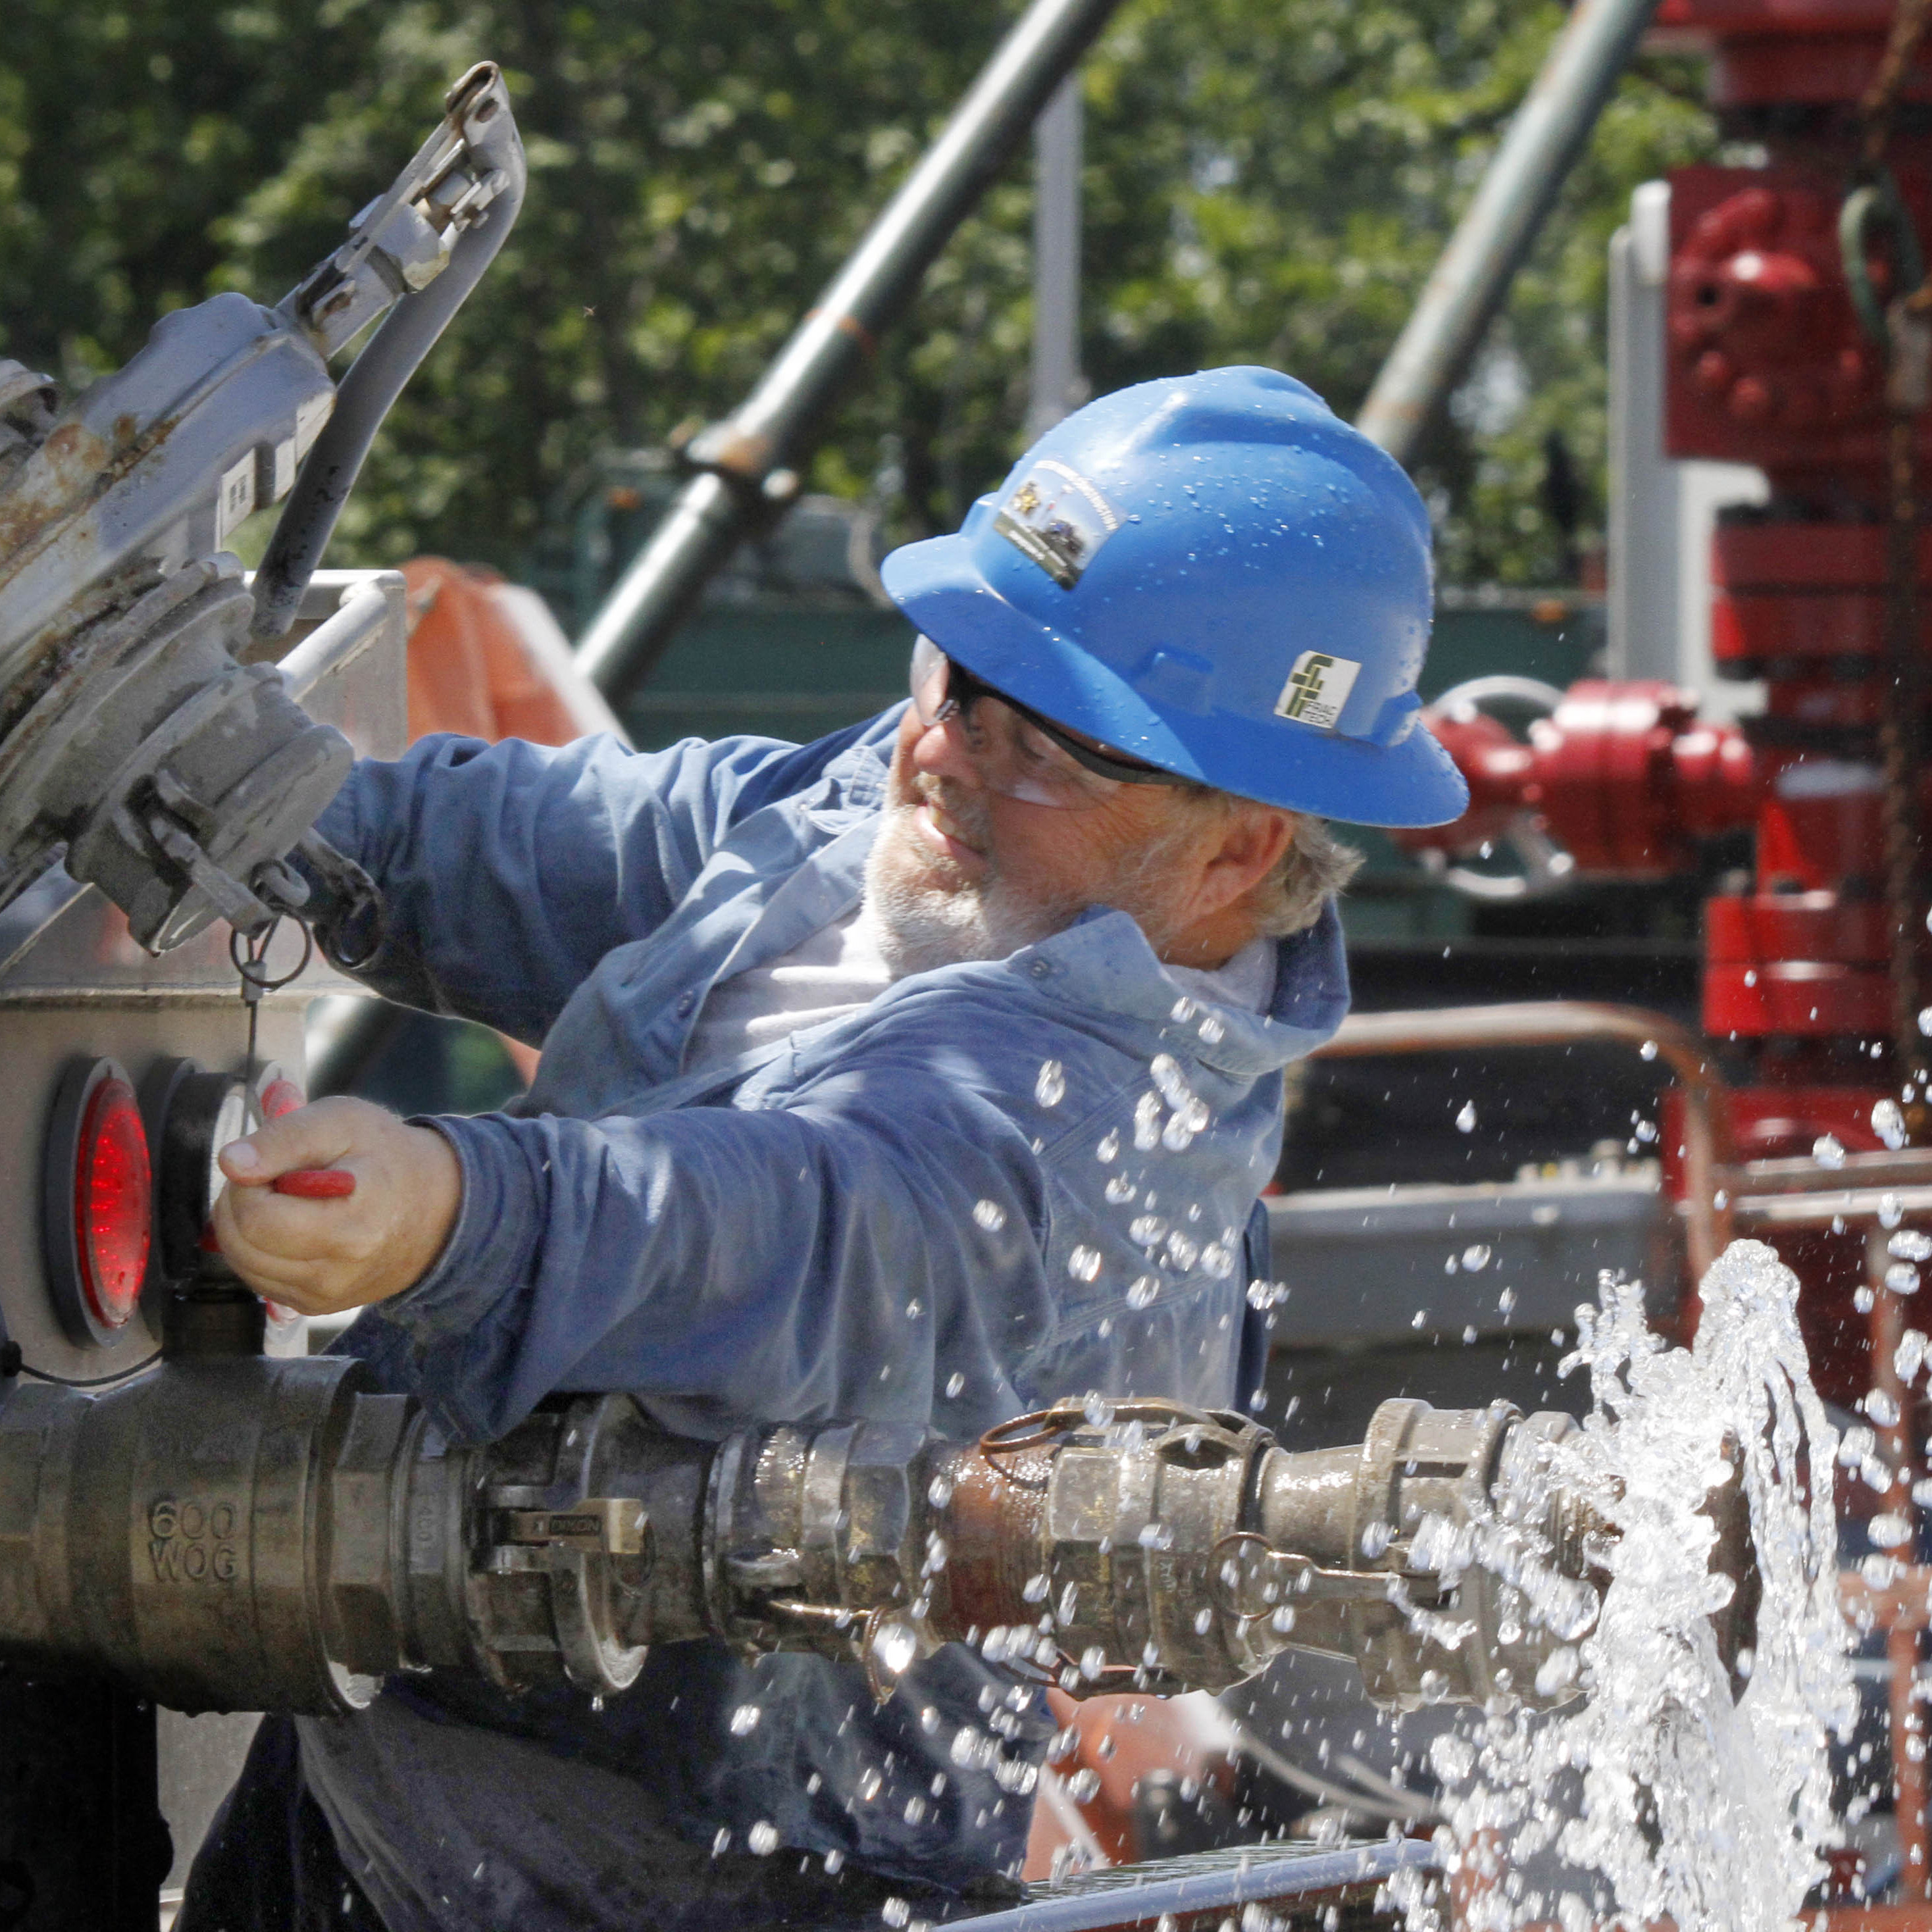 A local contractor closes the valve on his tanker truck on July 27, 2011, after watering the roads to help keep down dust at a hydraulic fracturing operation in Claysville, Pa.